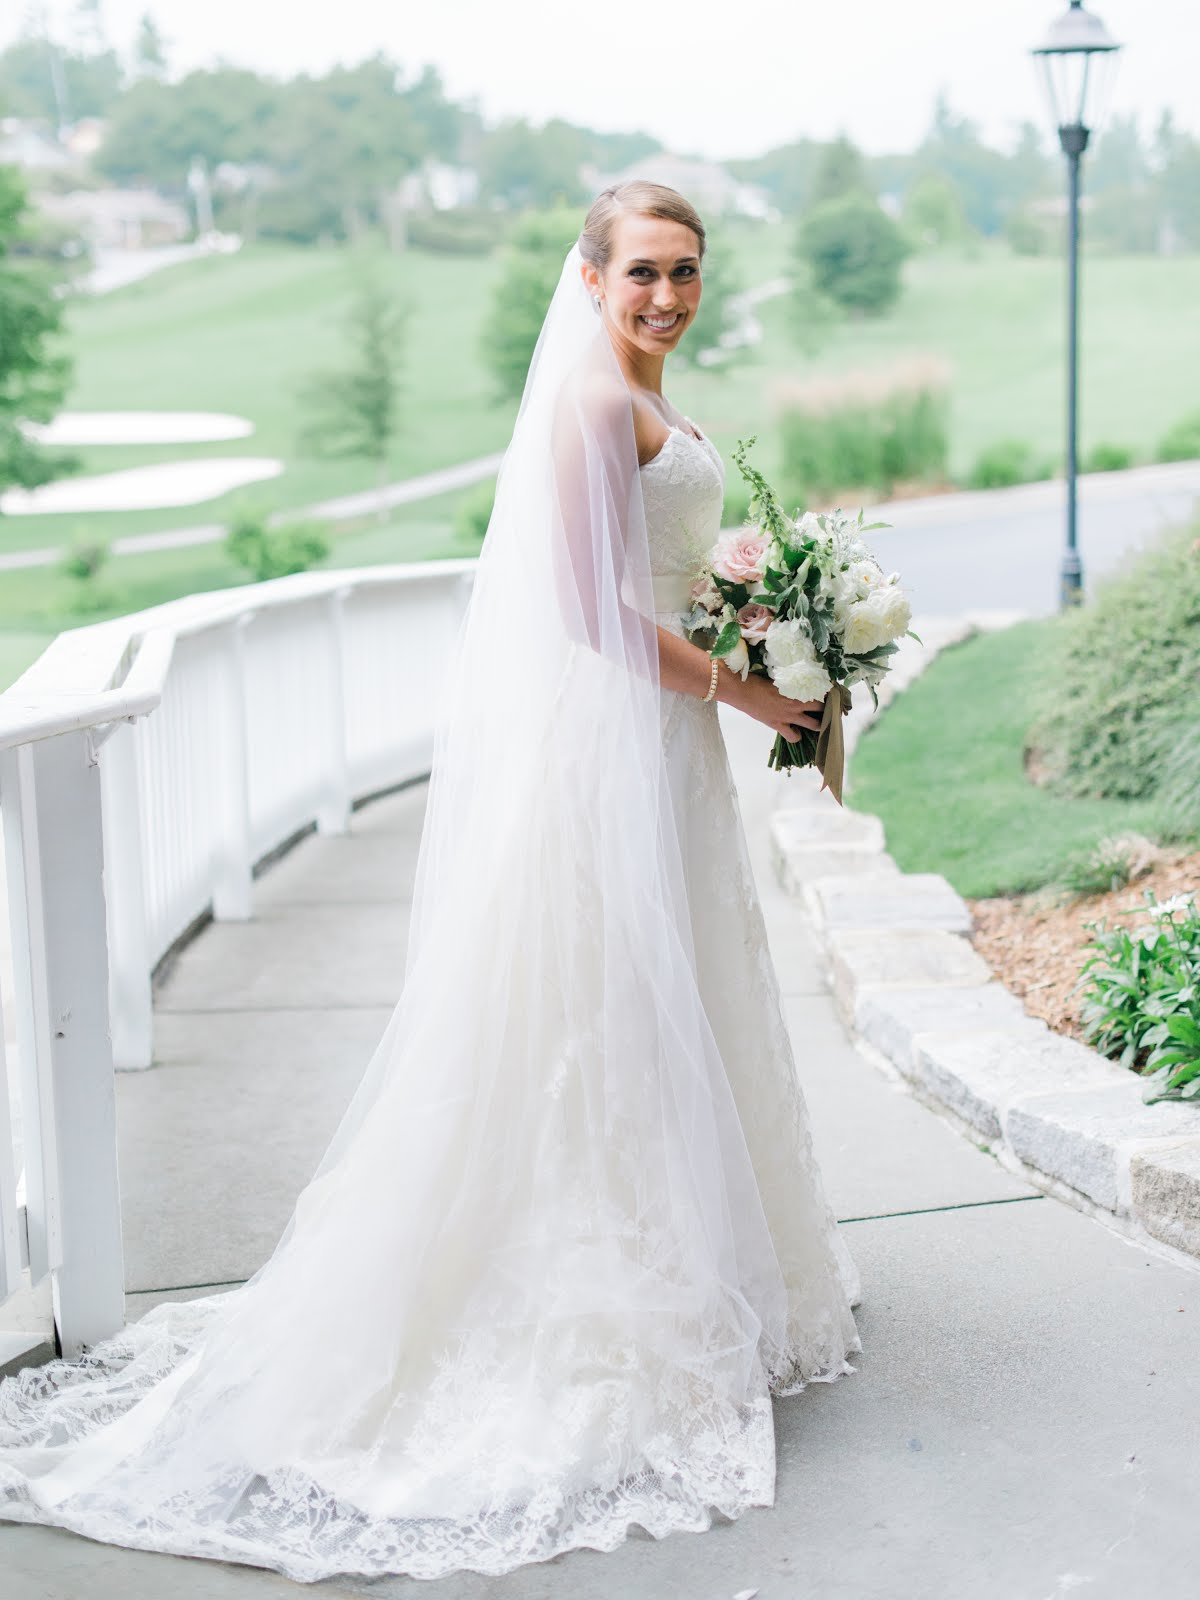 Sarah and Ben at the Blowing Rock Country Club